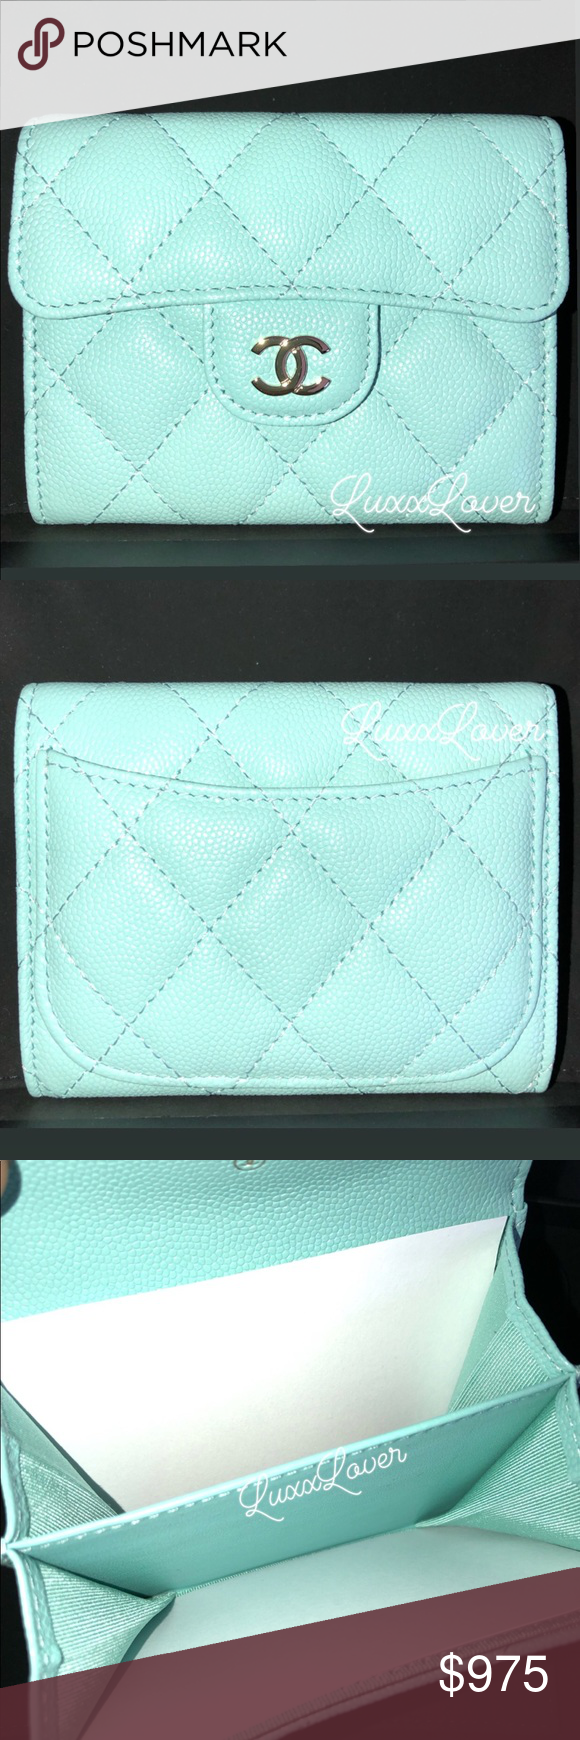 f9cb5fa182b1 Auth Chanel 19C Tiffany Blue XL card case GHW Auth Chanel 19C Tiffany Blue  XL card case in Caviar leather with GHW. Brand New with complete box set.